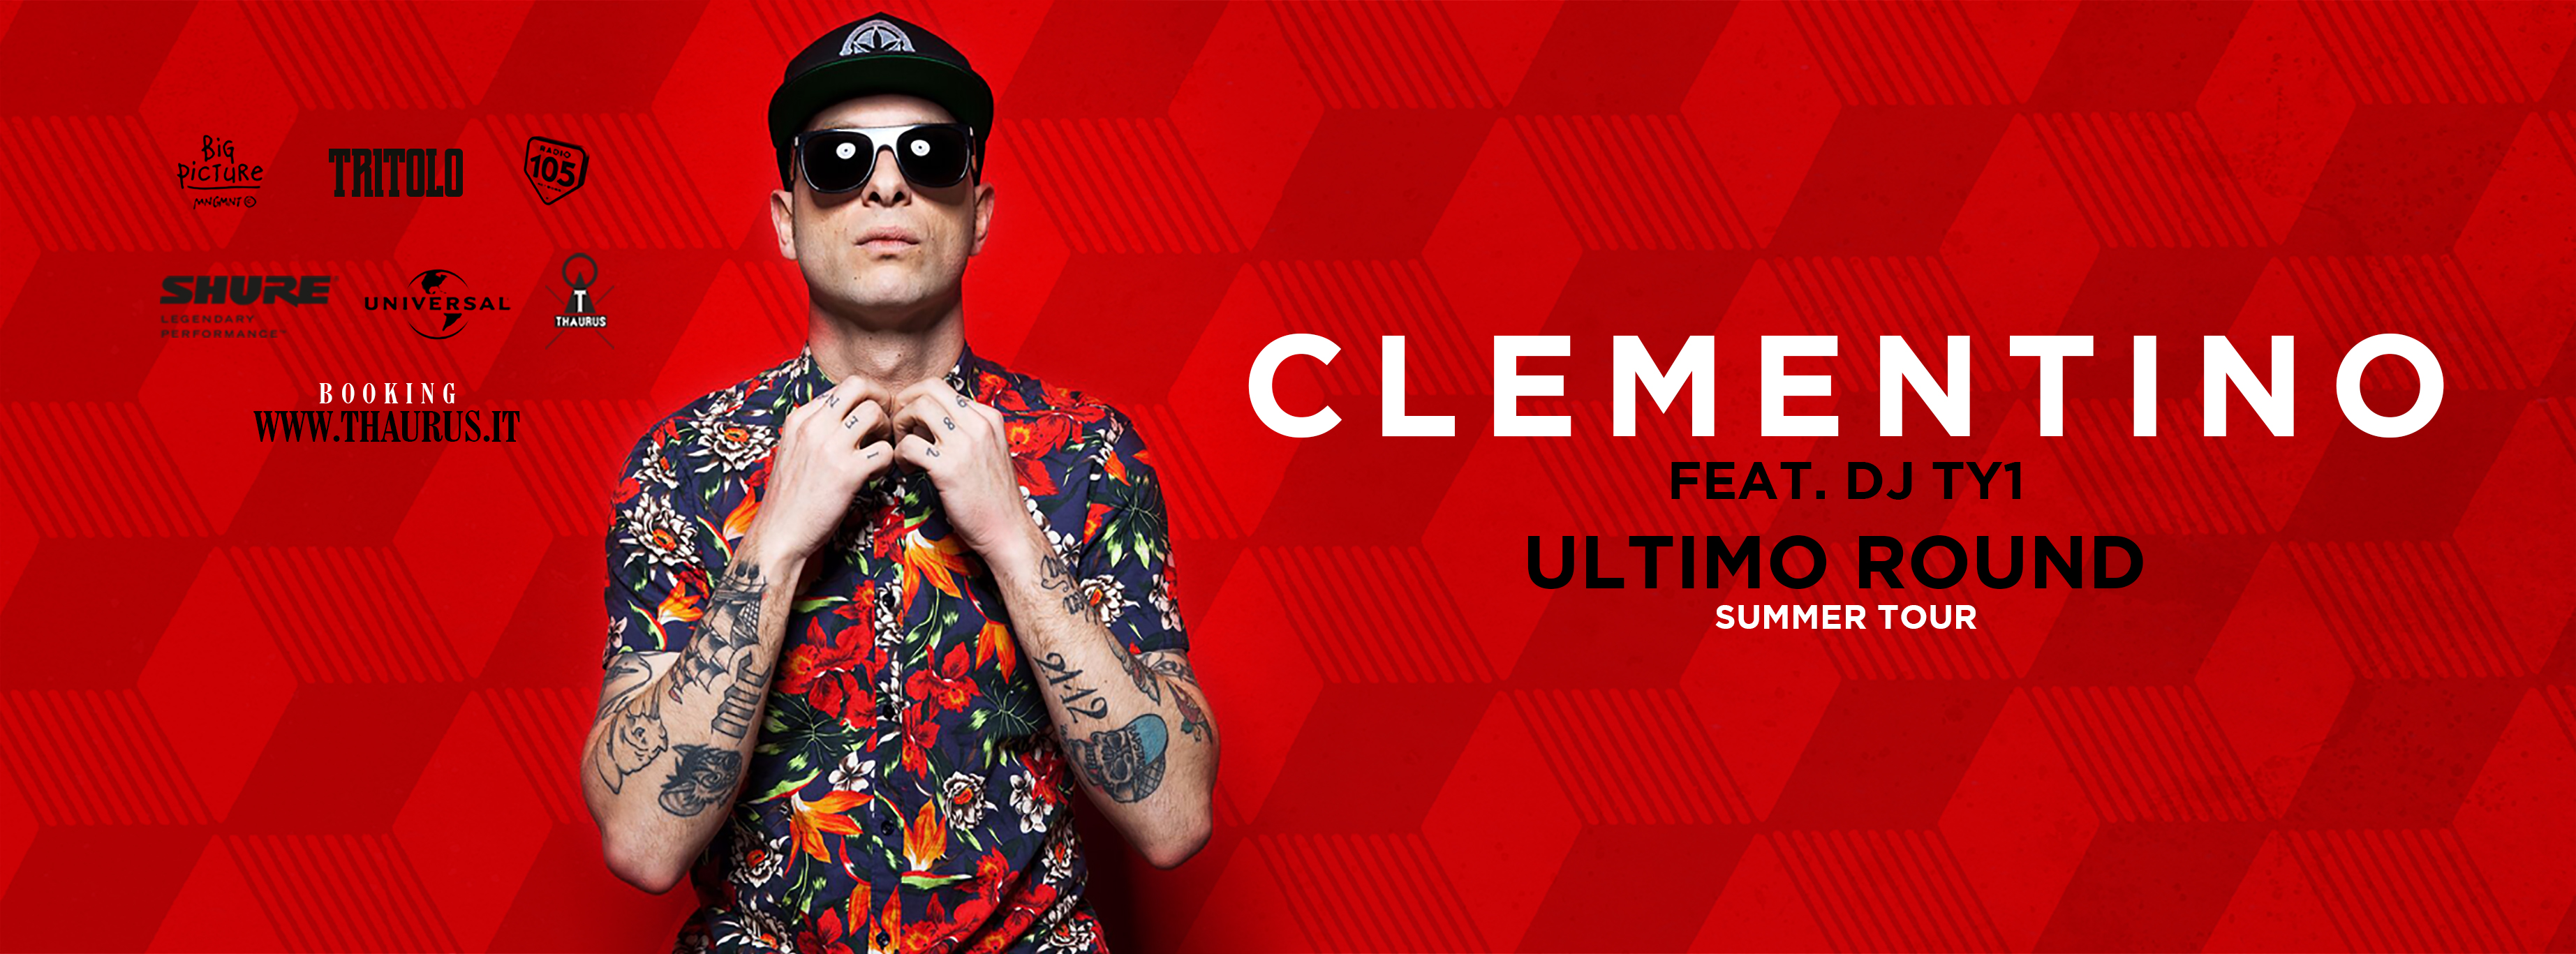 CLEMENTINO feat. DJ TY1